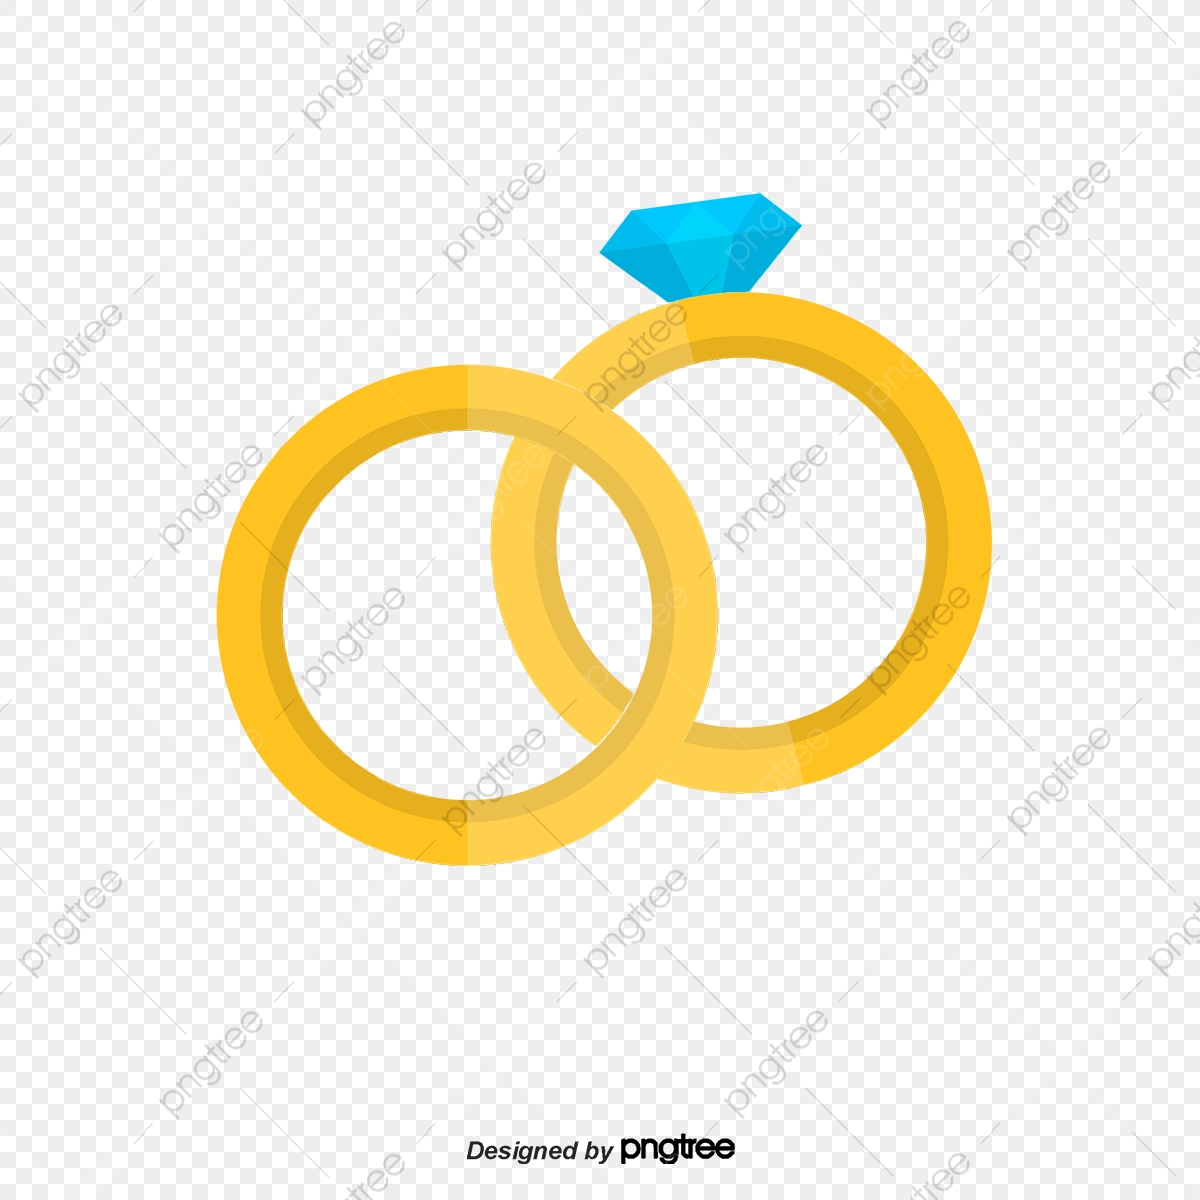 Cartoon Vector Material Diamond Wedding Ring Ring Vector Wedding Ring Png Transparent Clipart Image And Psd File For Free Download